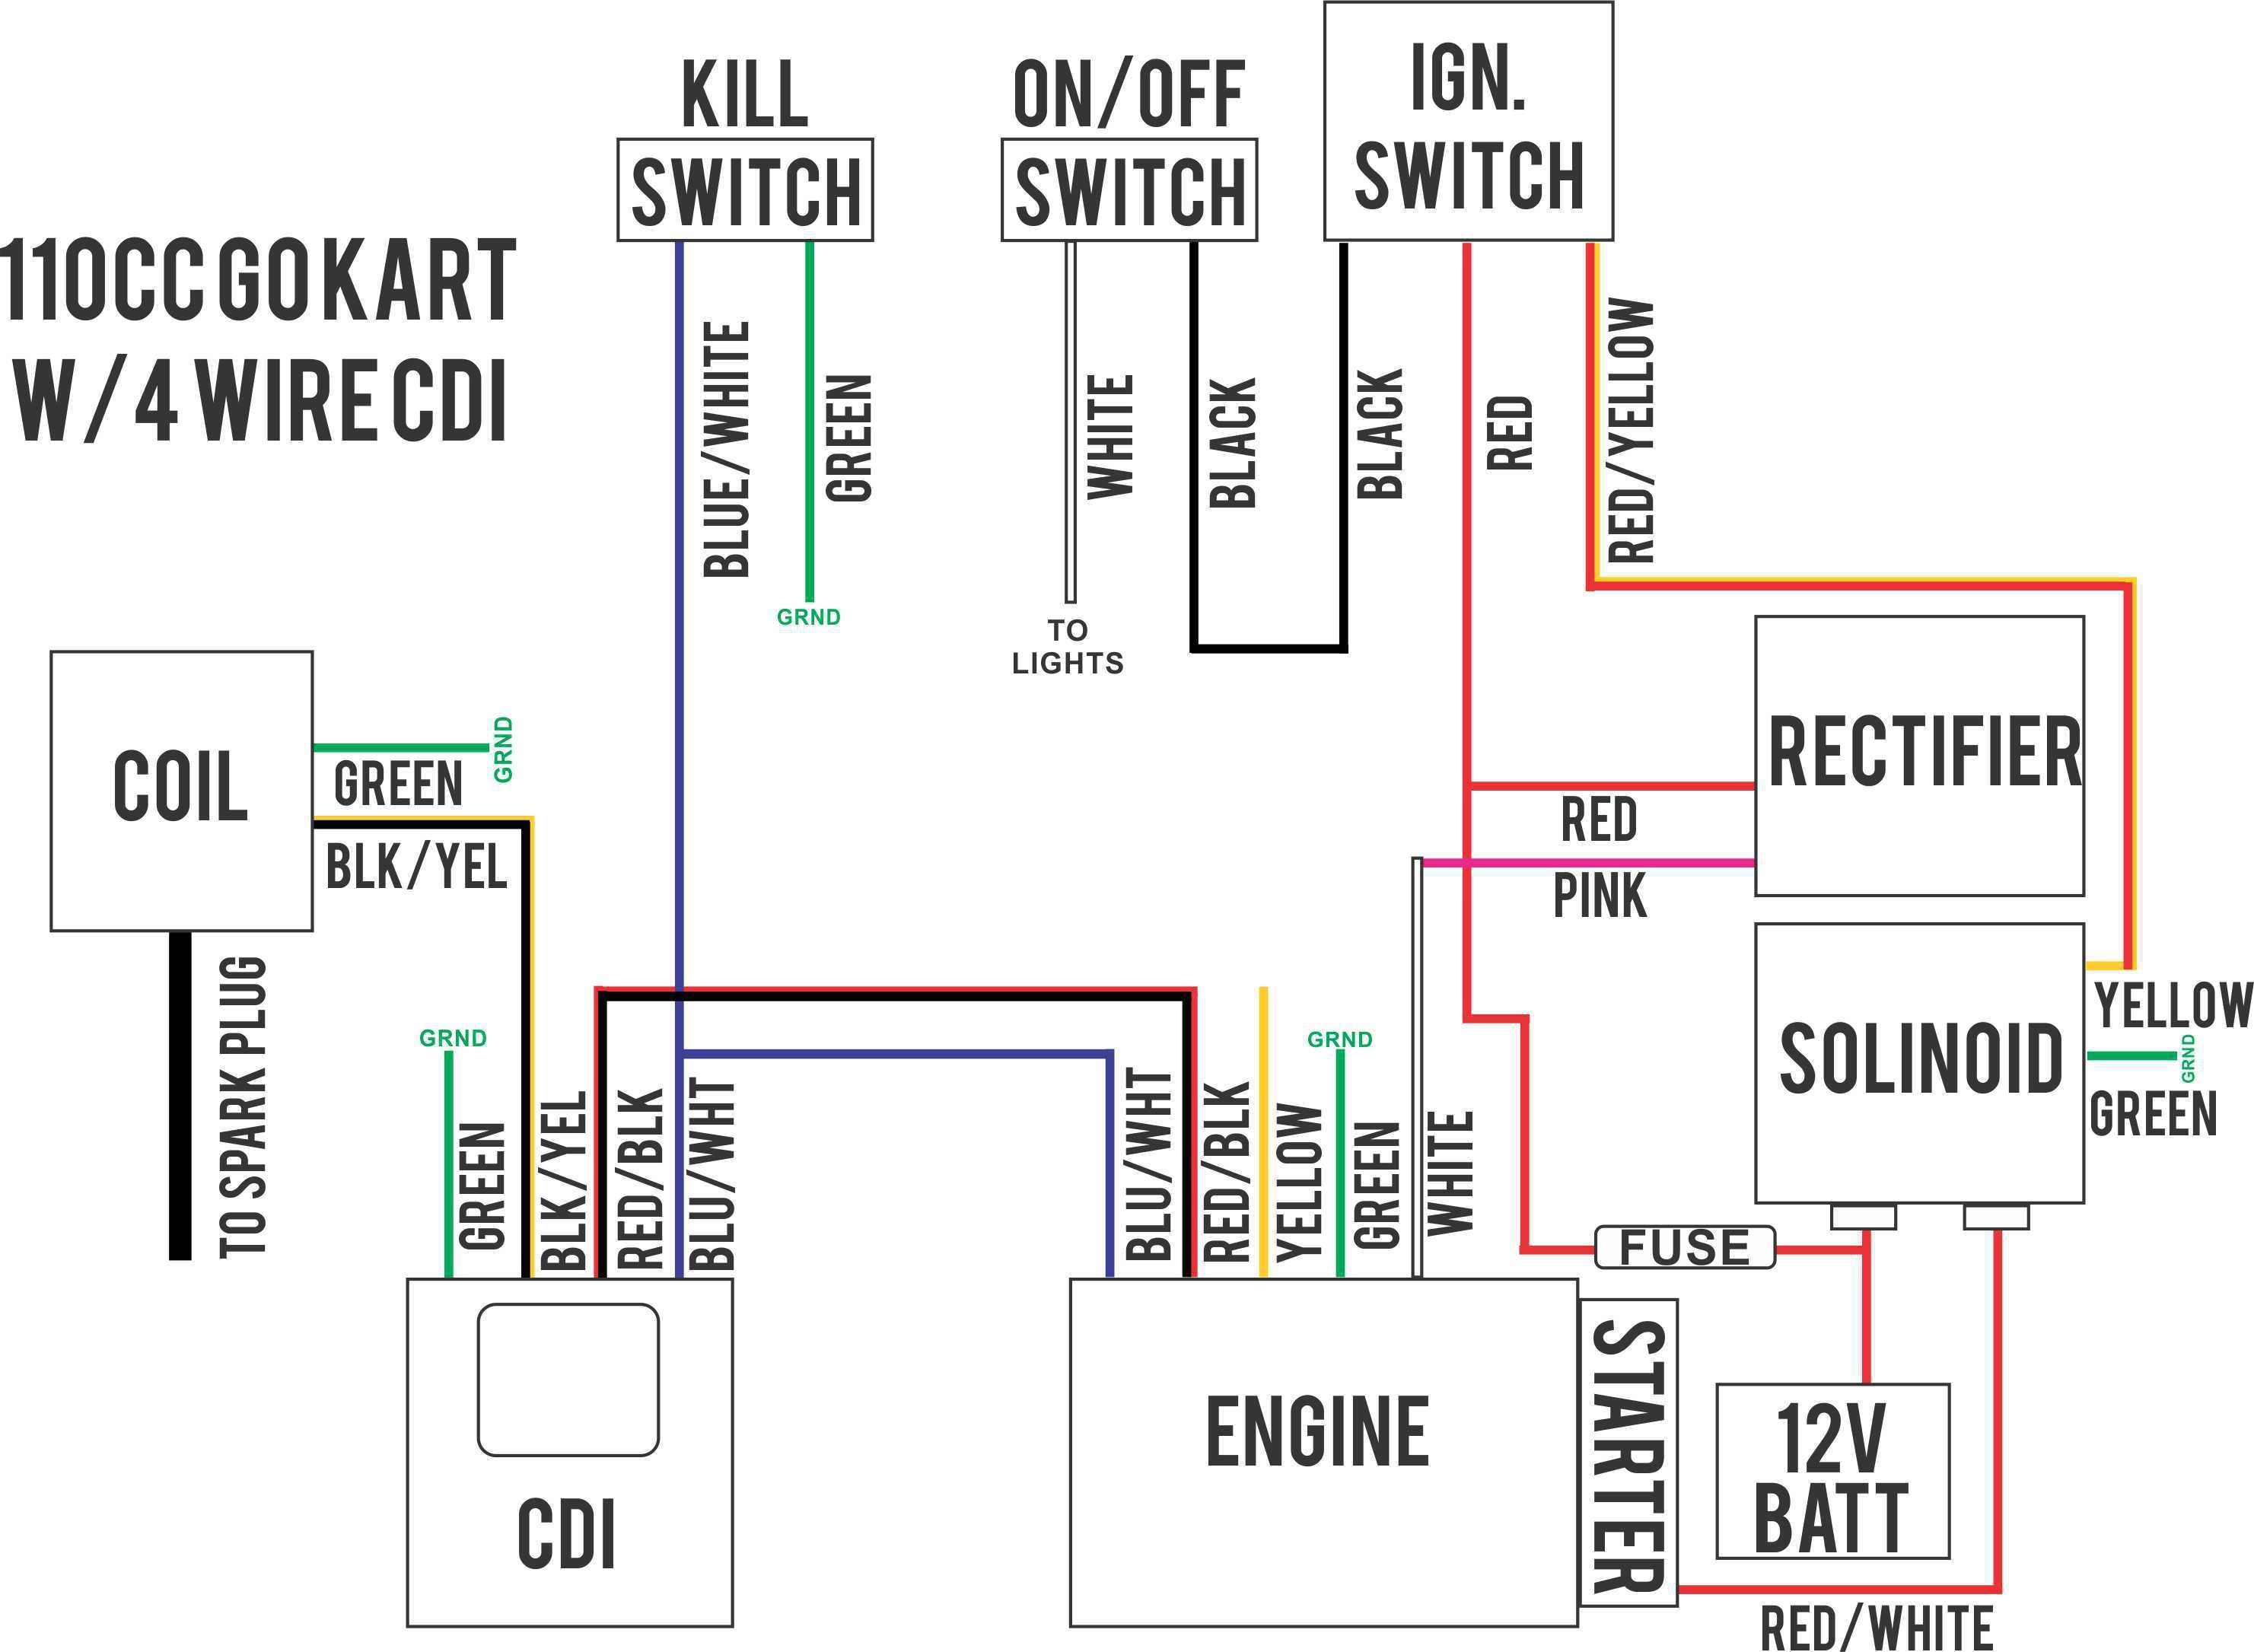 110v plug wiring diagram switched gfci outlet image